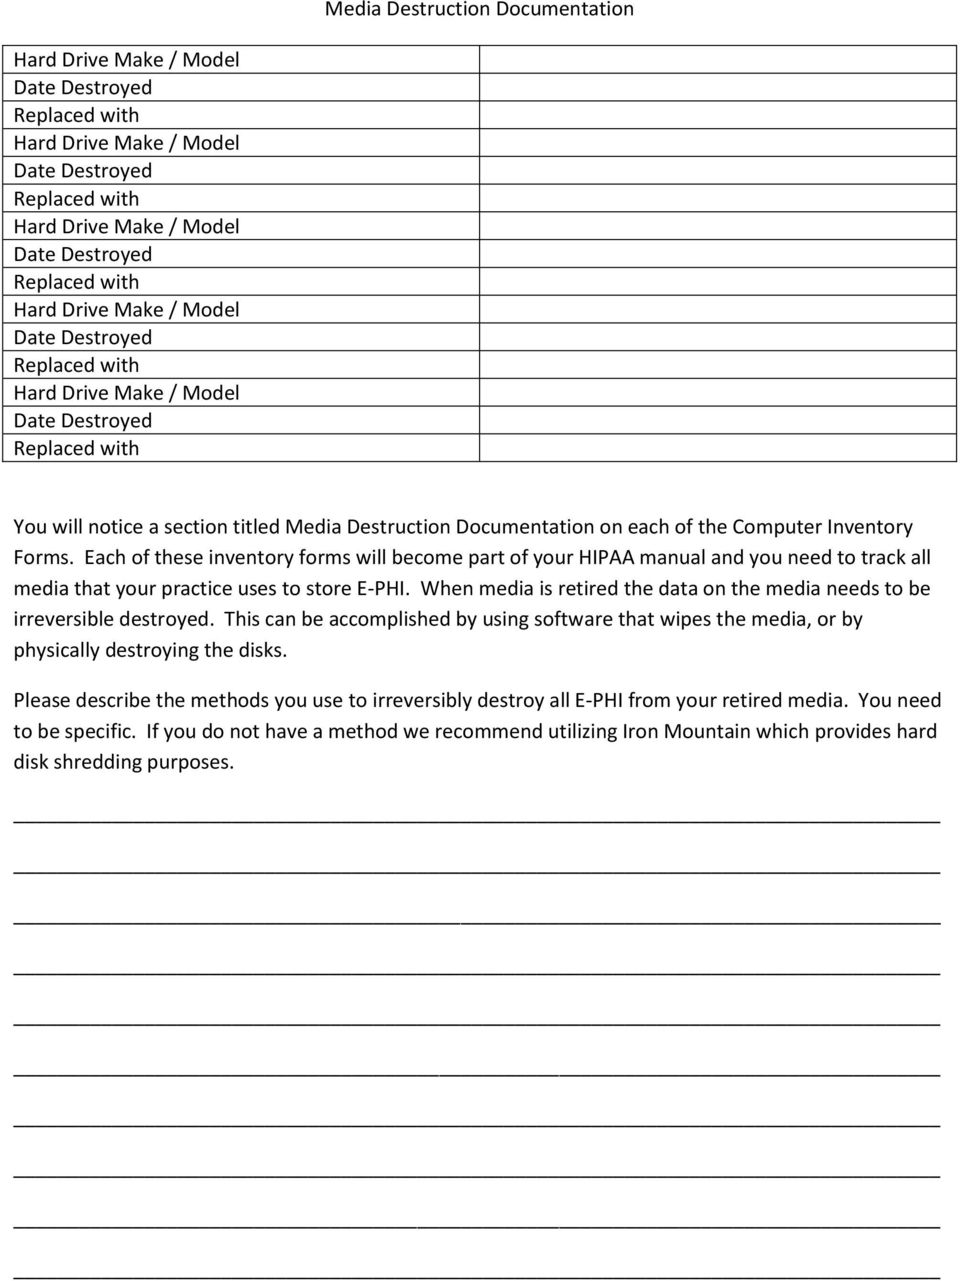 Forms. Each of these inventory forms will become part of your HIPAA manual and you need to track all media that your practice uses to store E-PHI.